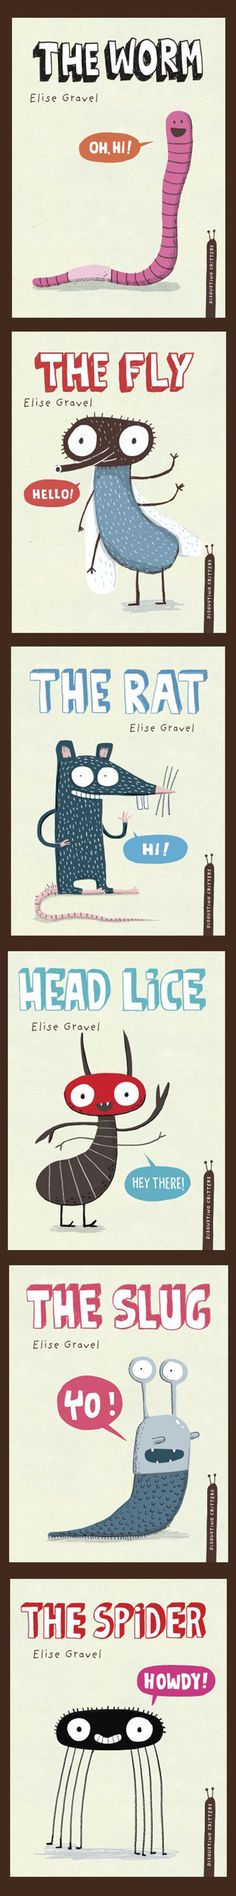 Elise Gravel illustration •The Disgusting Critters series, published with Tundra Books. Funny science facts and biology information about gross animals and bugs. The slug • The rat • The spider • The worm • Head Lice • ˘he fly